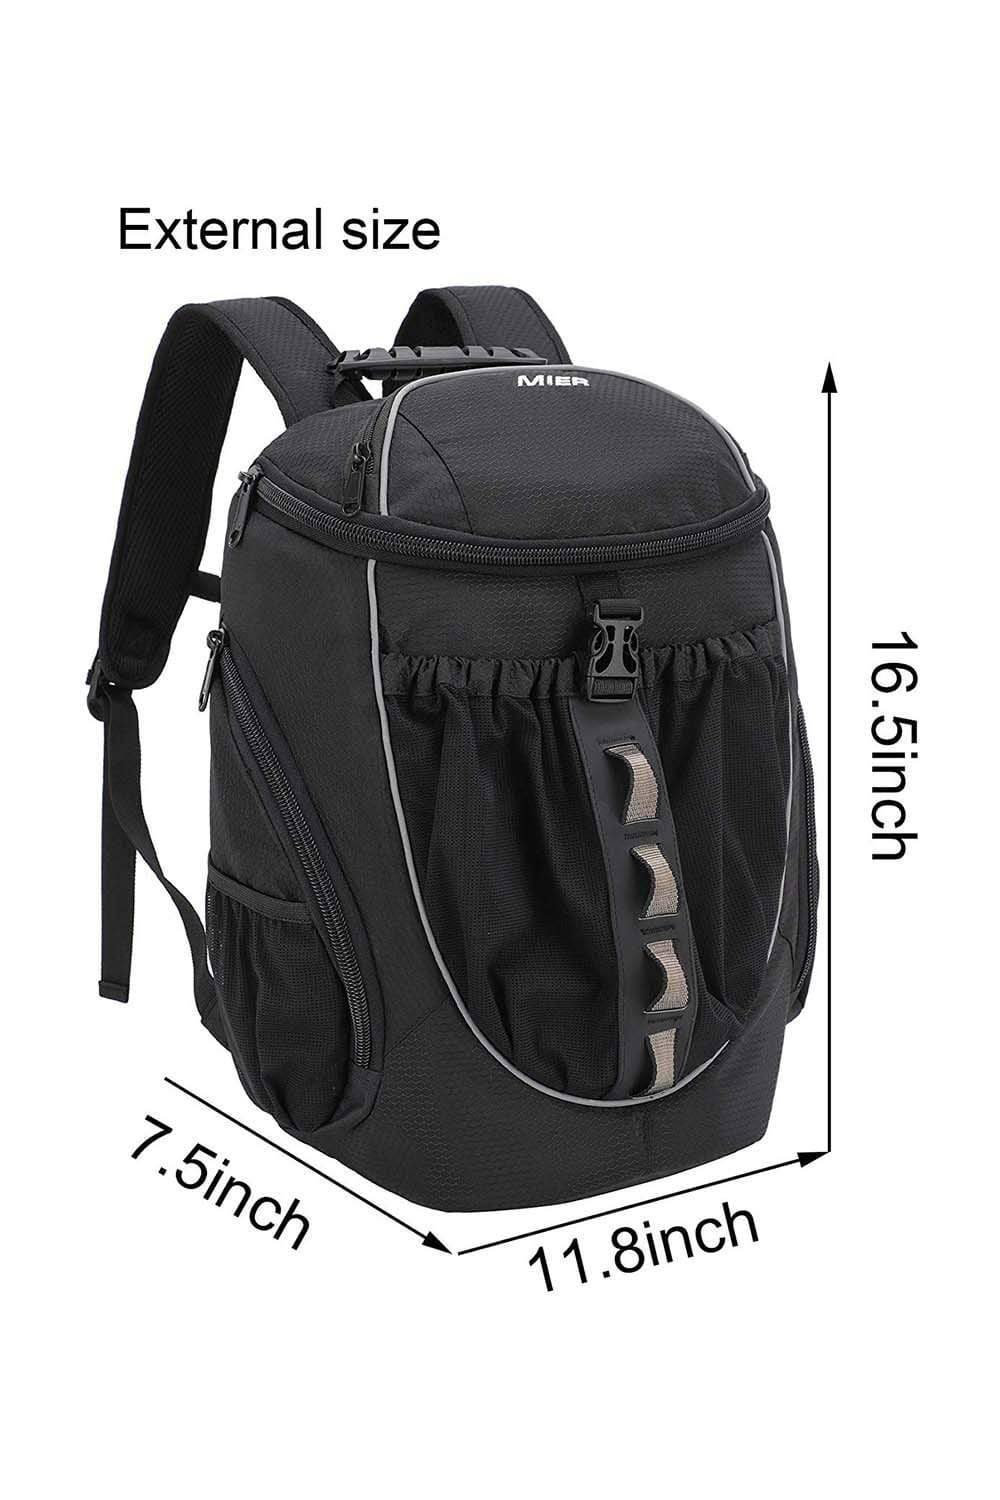 Leakproof Backpack with Cooler Compartment